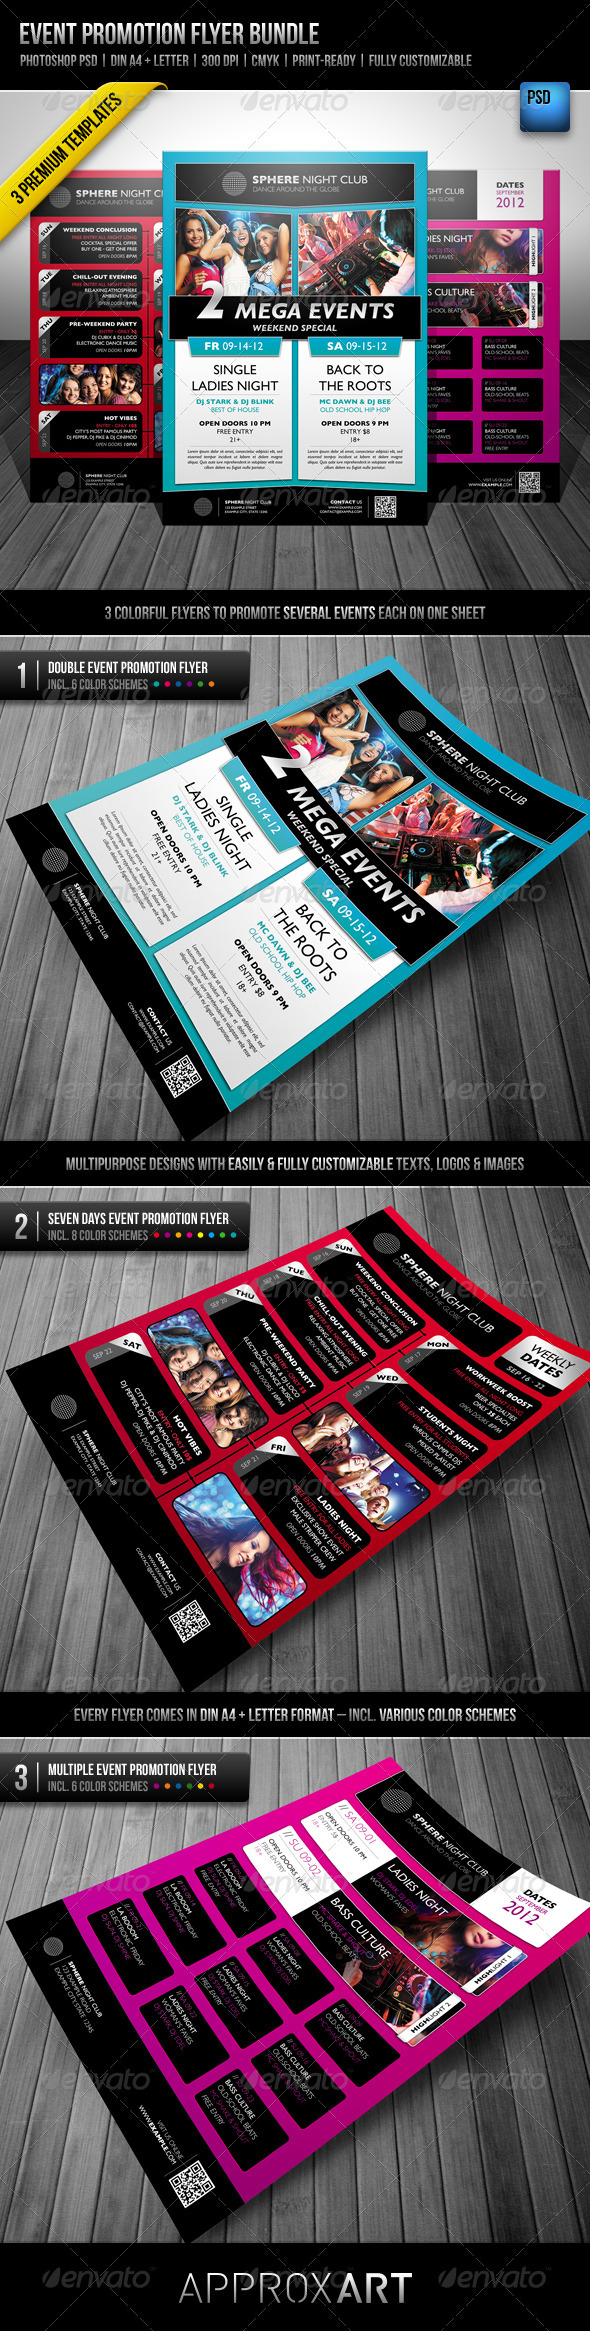 Event Promotion Flyer Bundle - Clubs & Parties Events